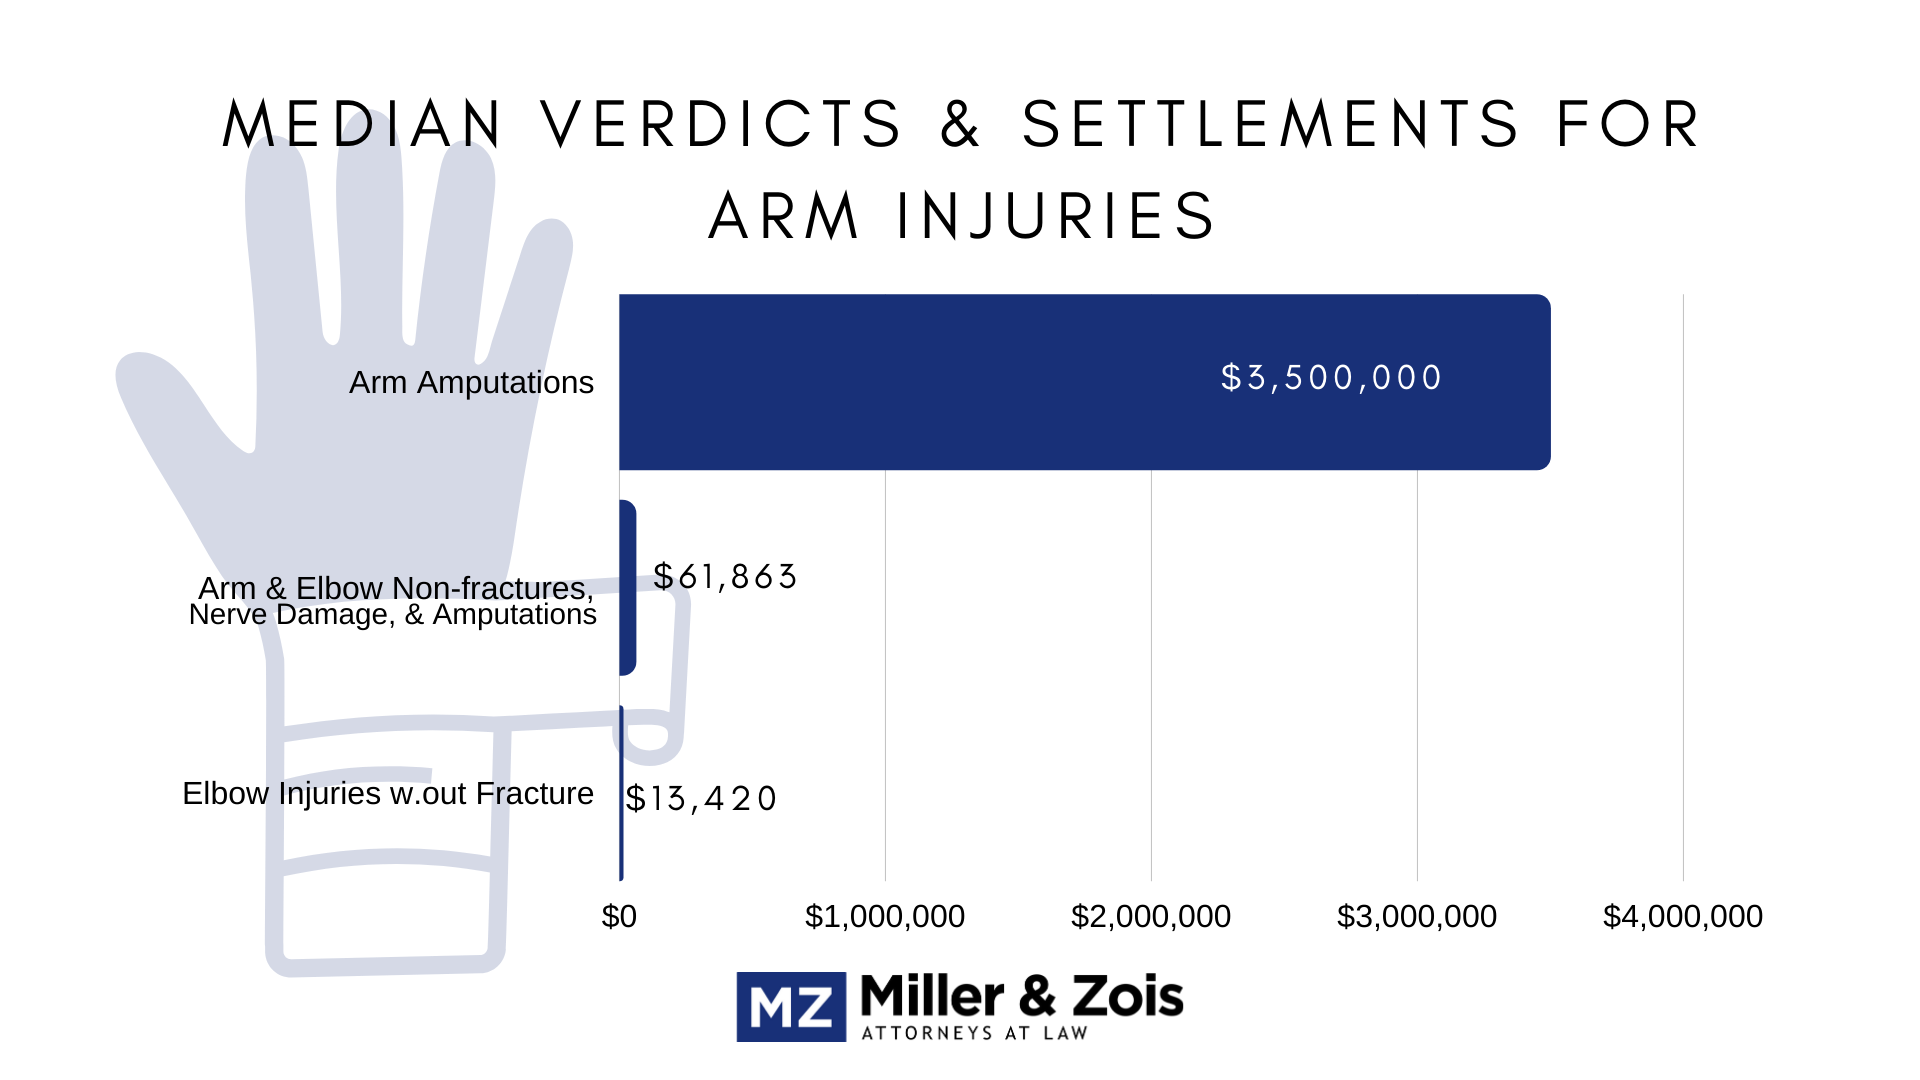 arm injuries verdicts settlements